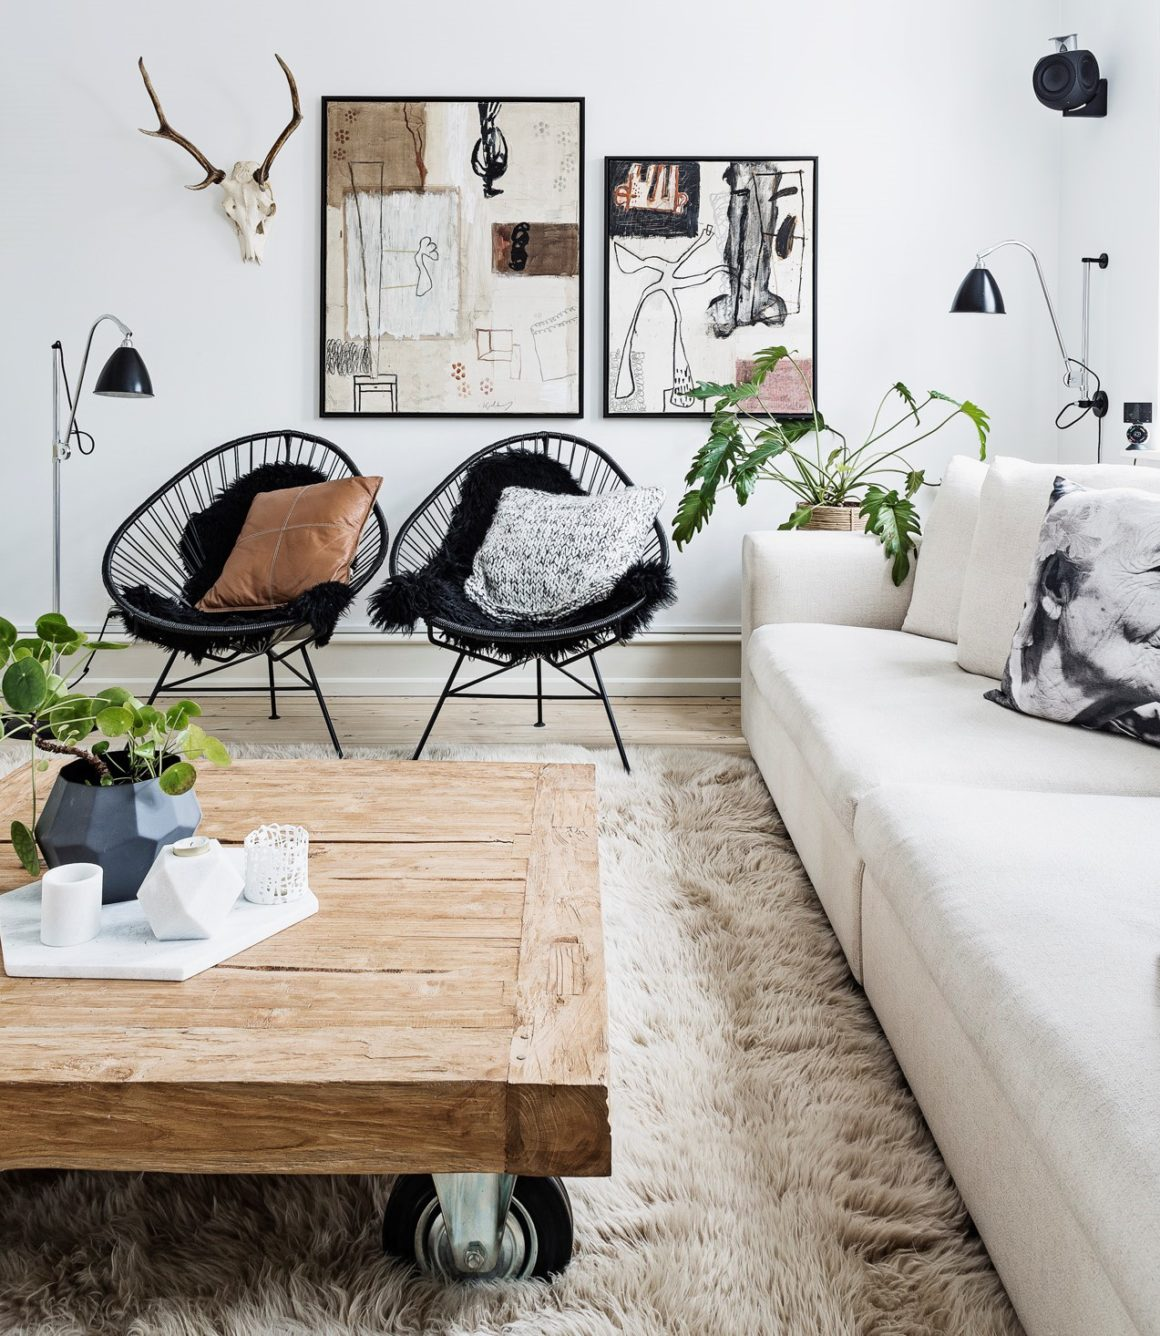 8 Clever Small Living Room Ideas With Scandi Style: Interior Design Styles: 8 Popular Types Explained